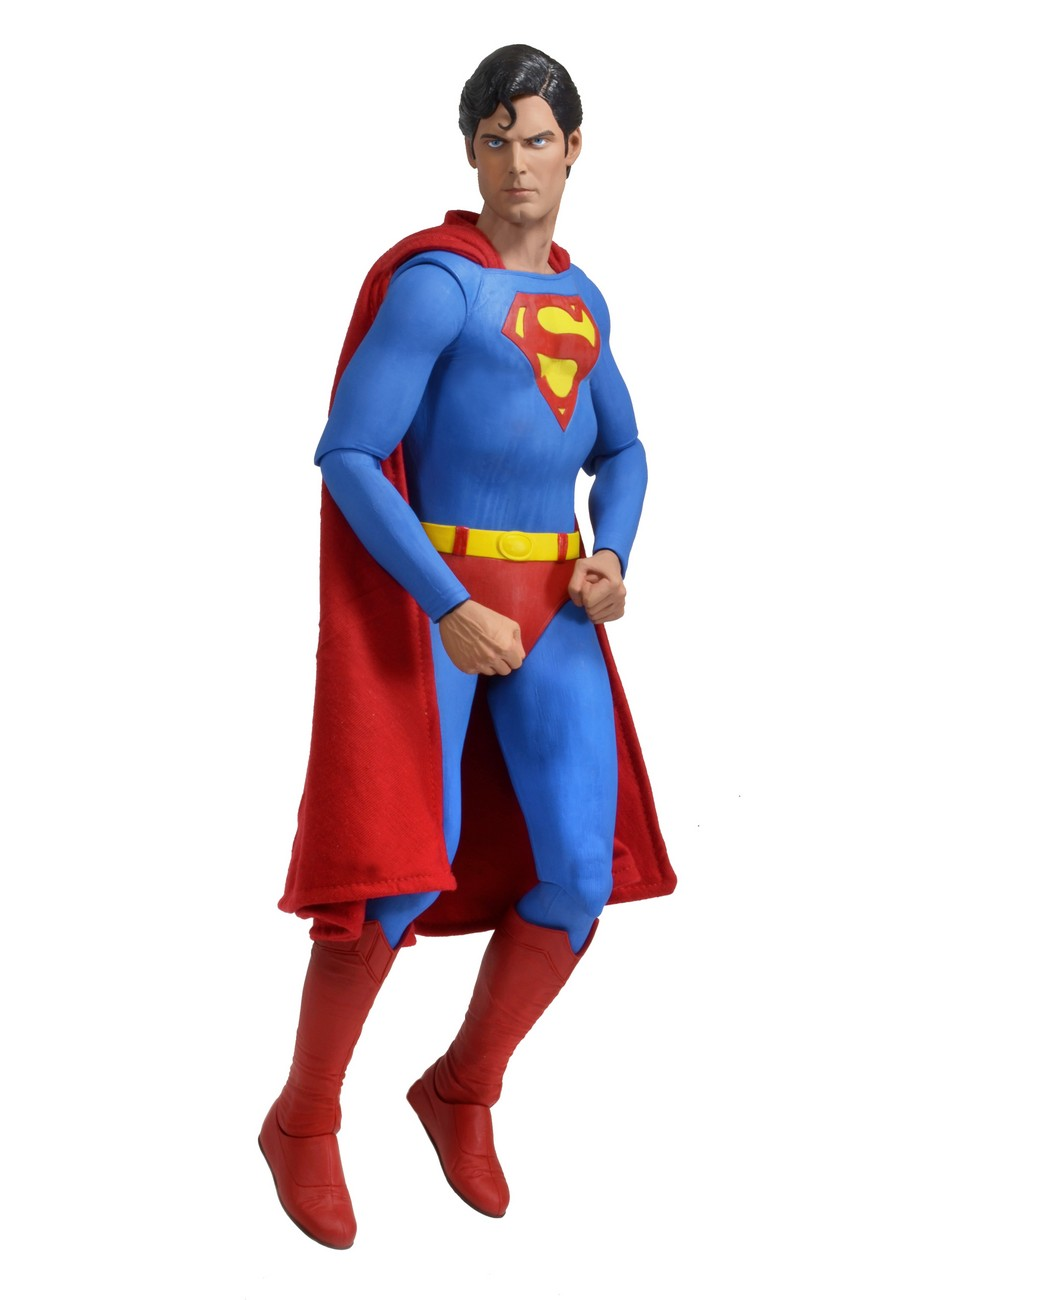 http://news.toyark.com/wp-content/uploads/sites/4/2015/06/Christopher-Reeve-18-Inch-Superman-by-NECA-005.jpg